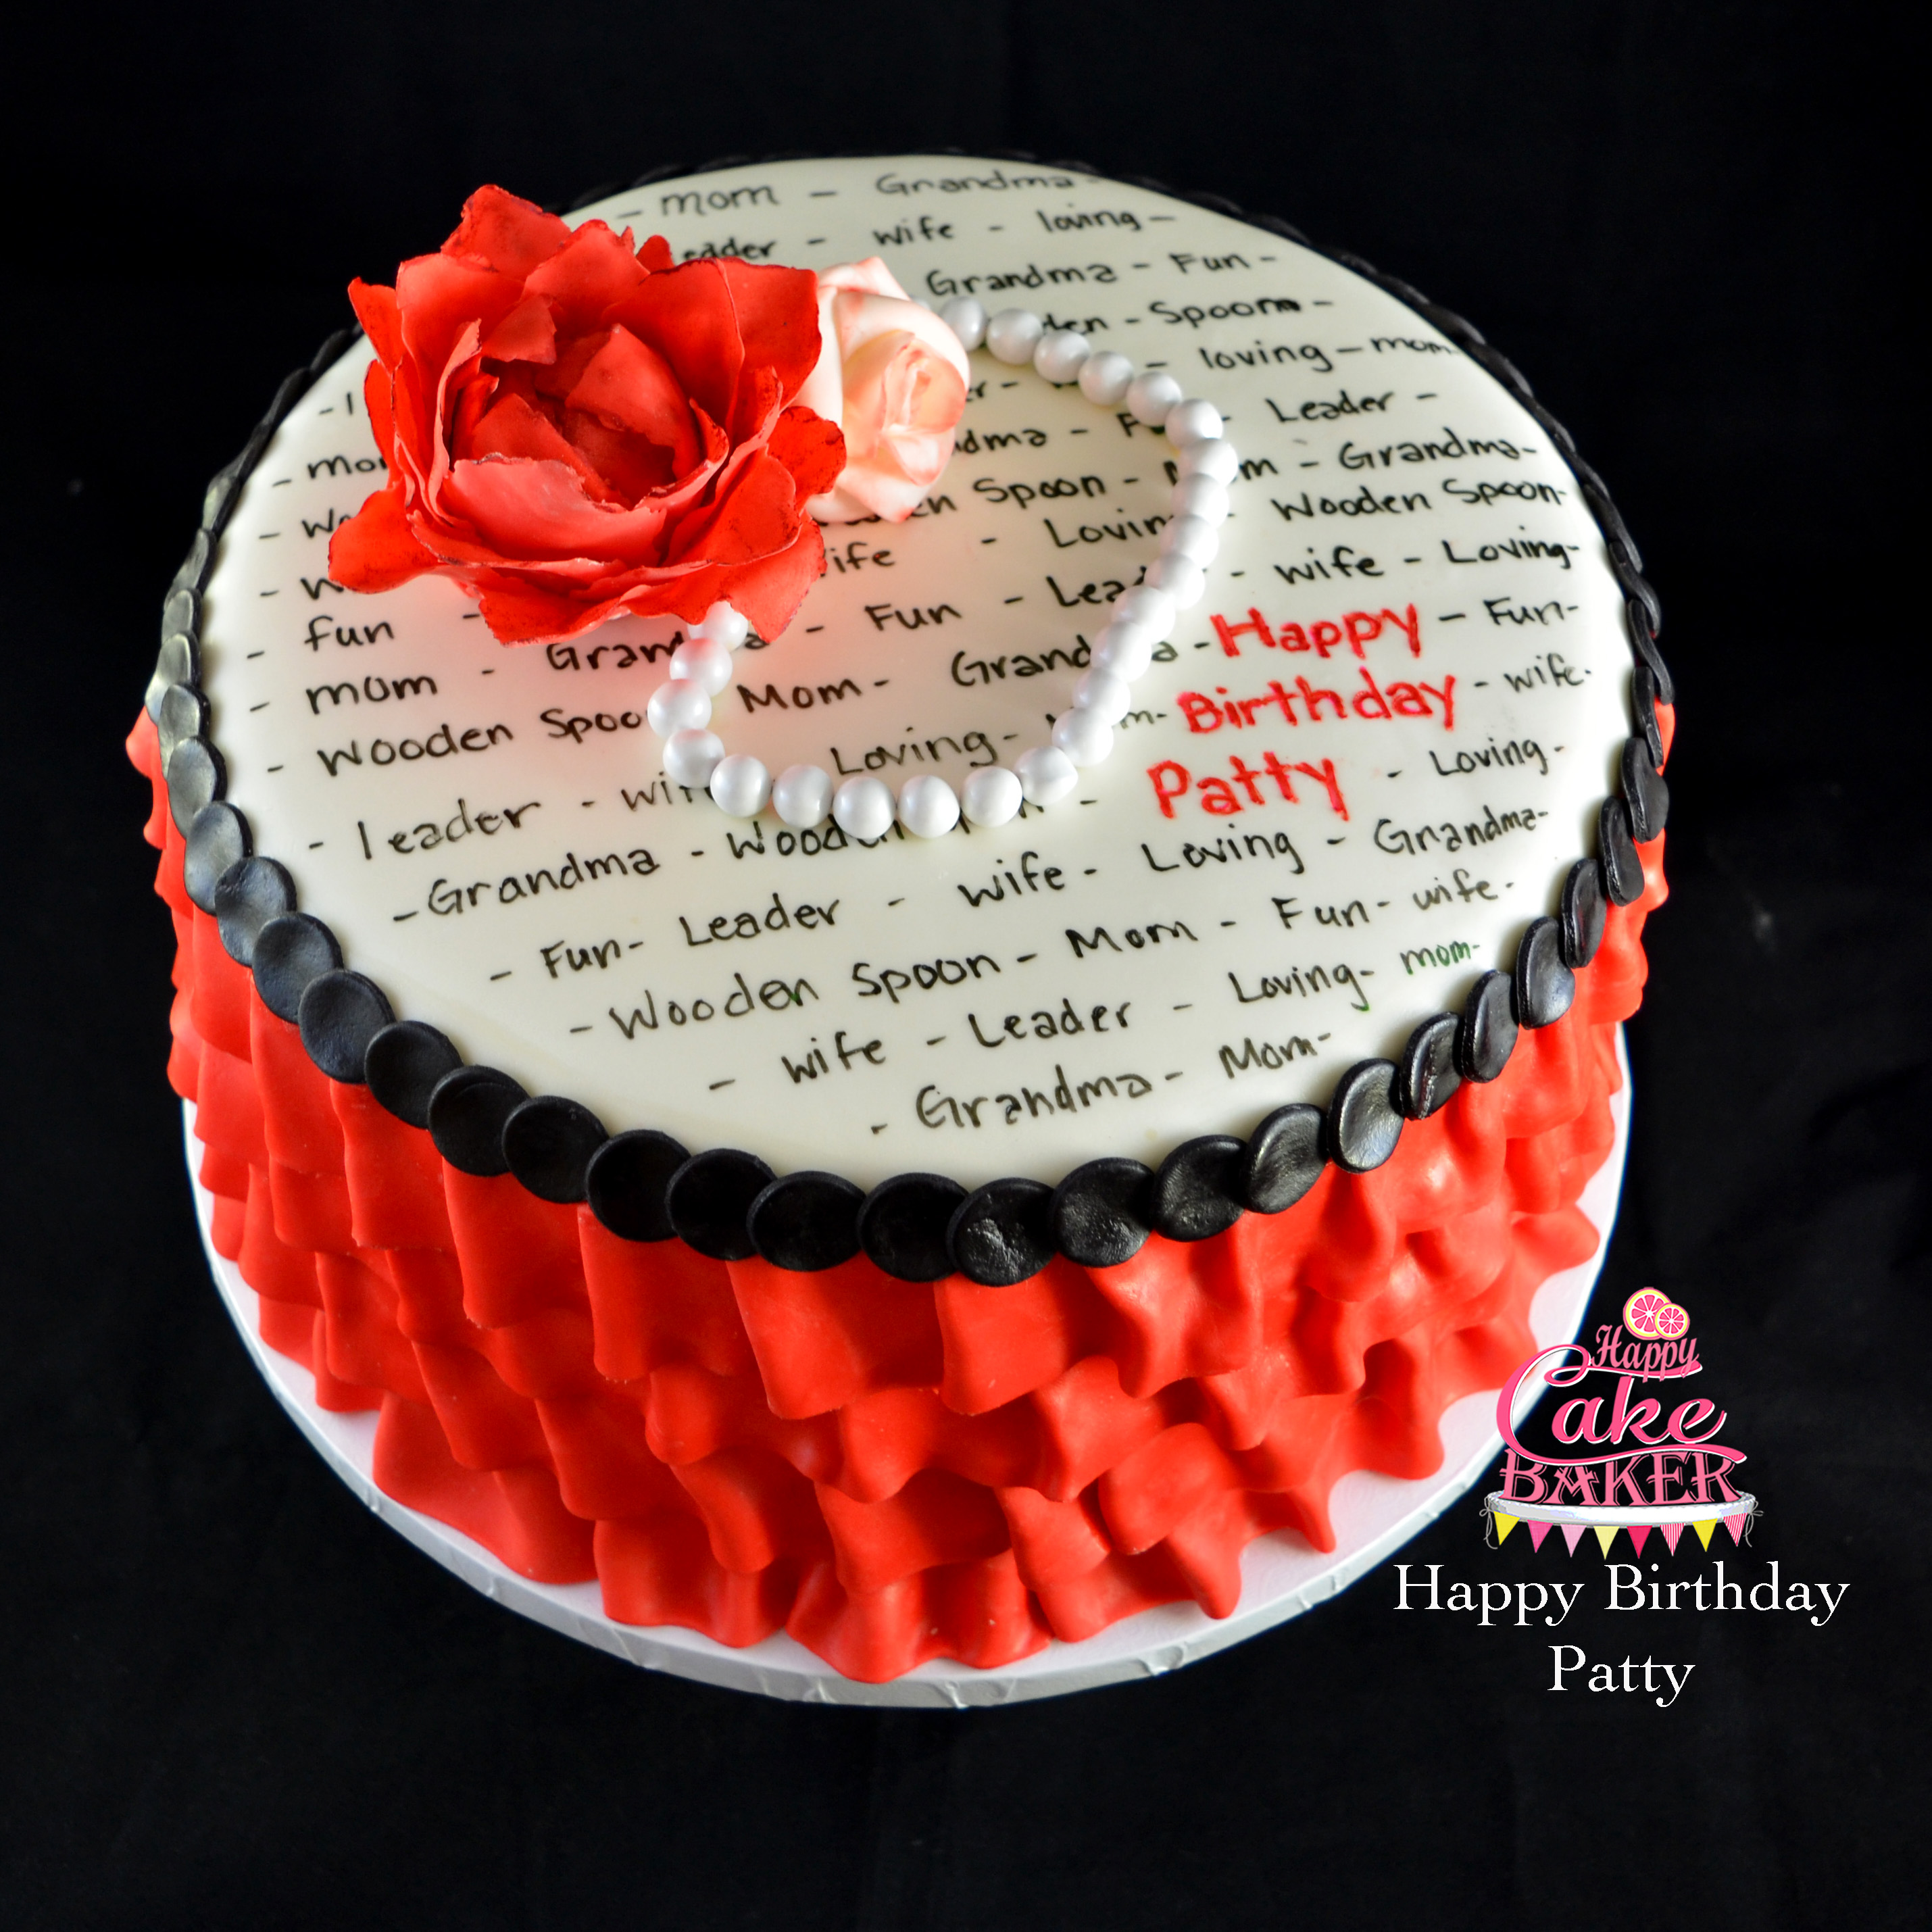 Happy cake baker creating memories one cake at a time flowers and pearls izmirmasajfo